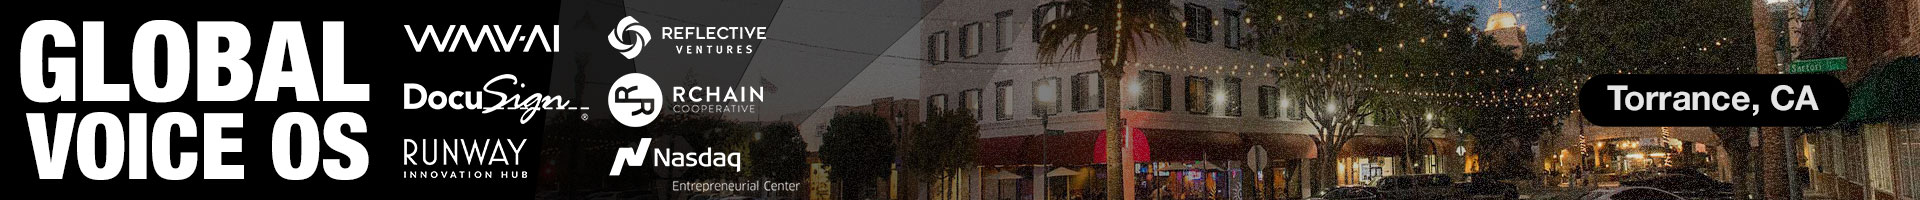 Event-Global-Voice-OS-1920x200-Torrance-CA